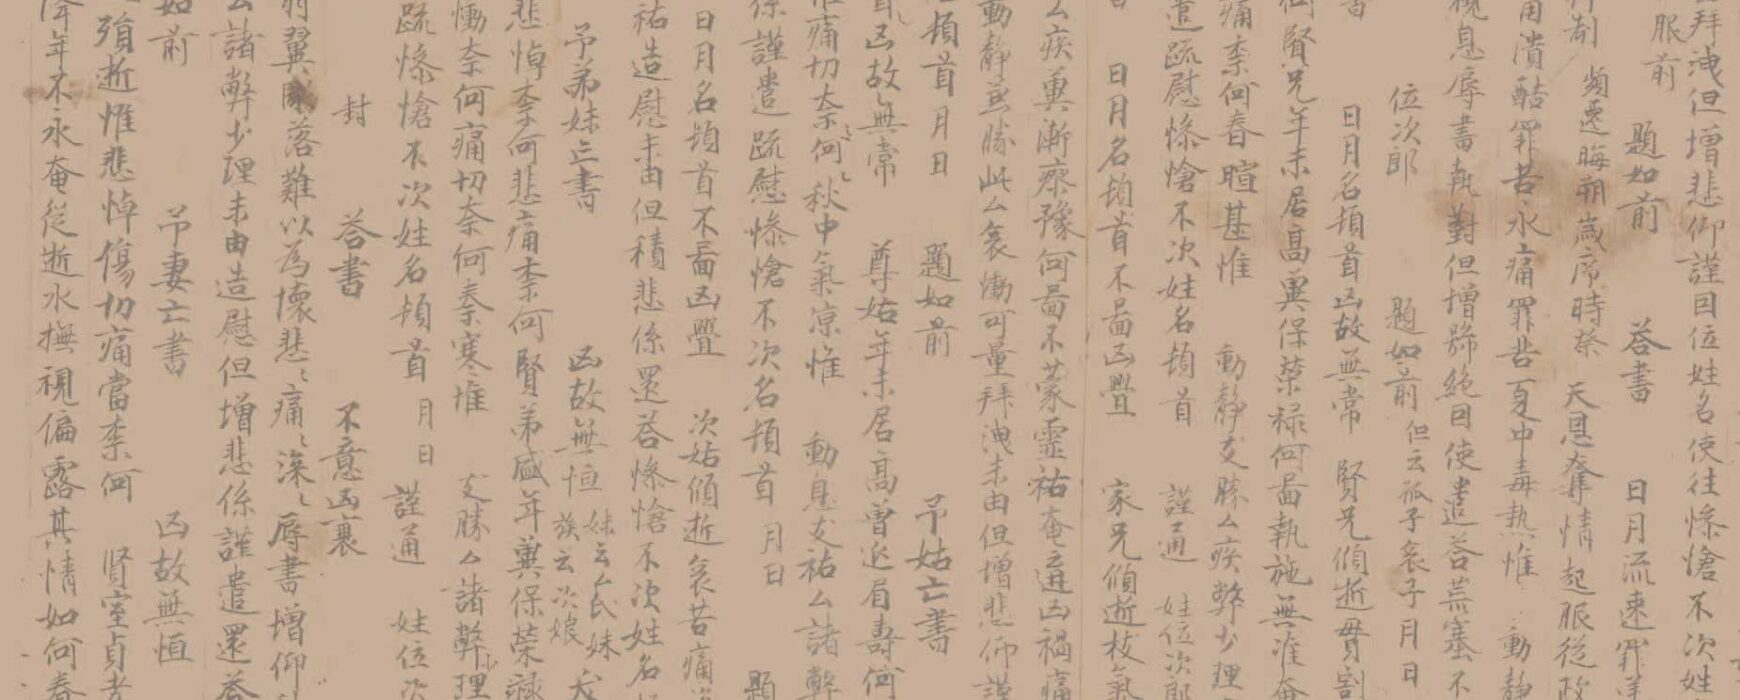 Dunhuang Manuscripts: An Introduction to Texts from the Silk Road